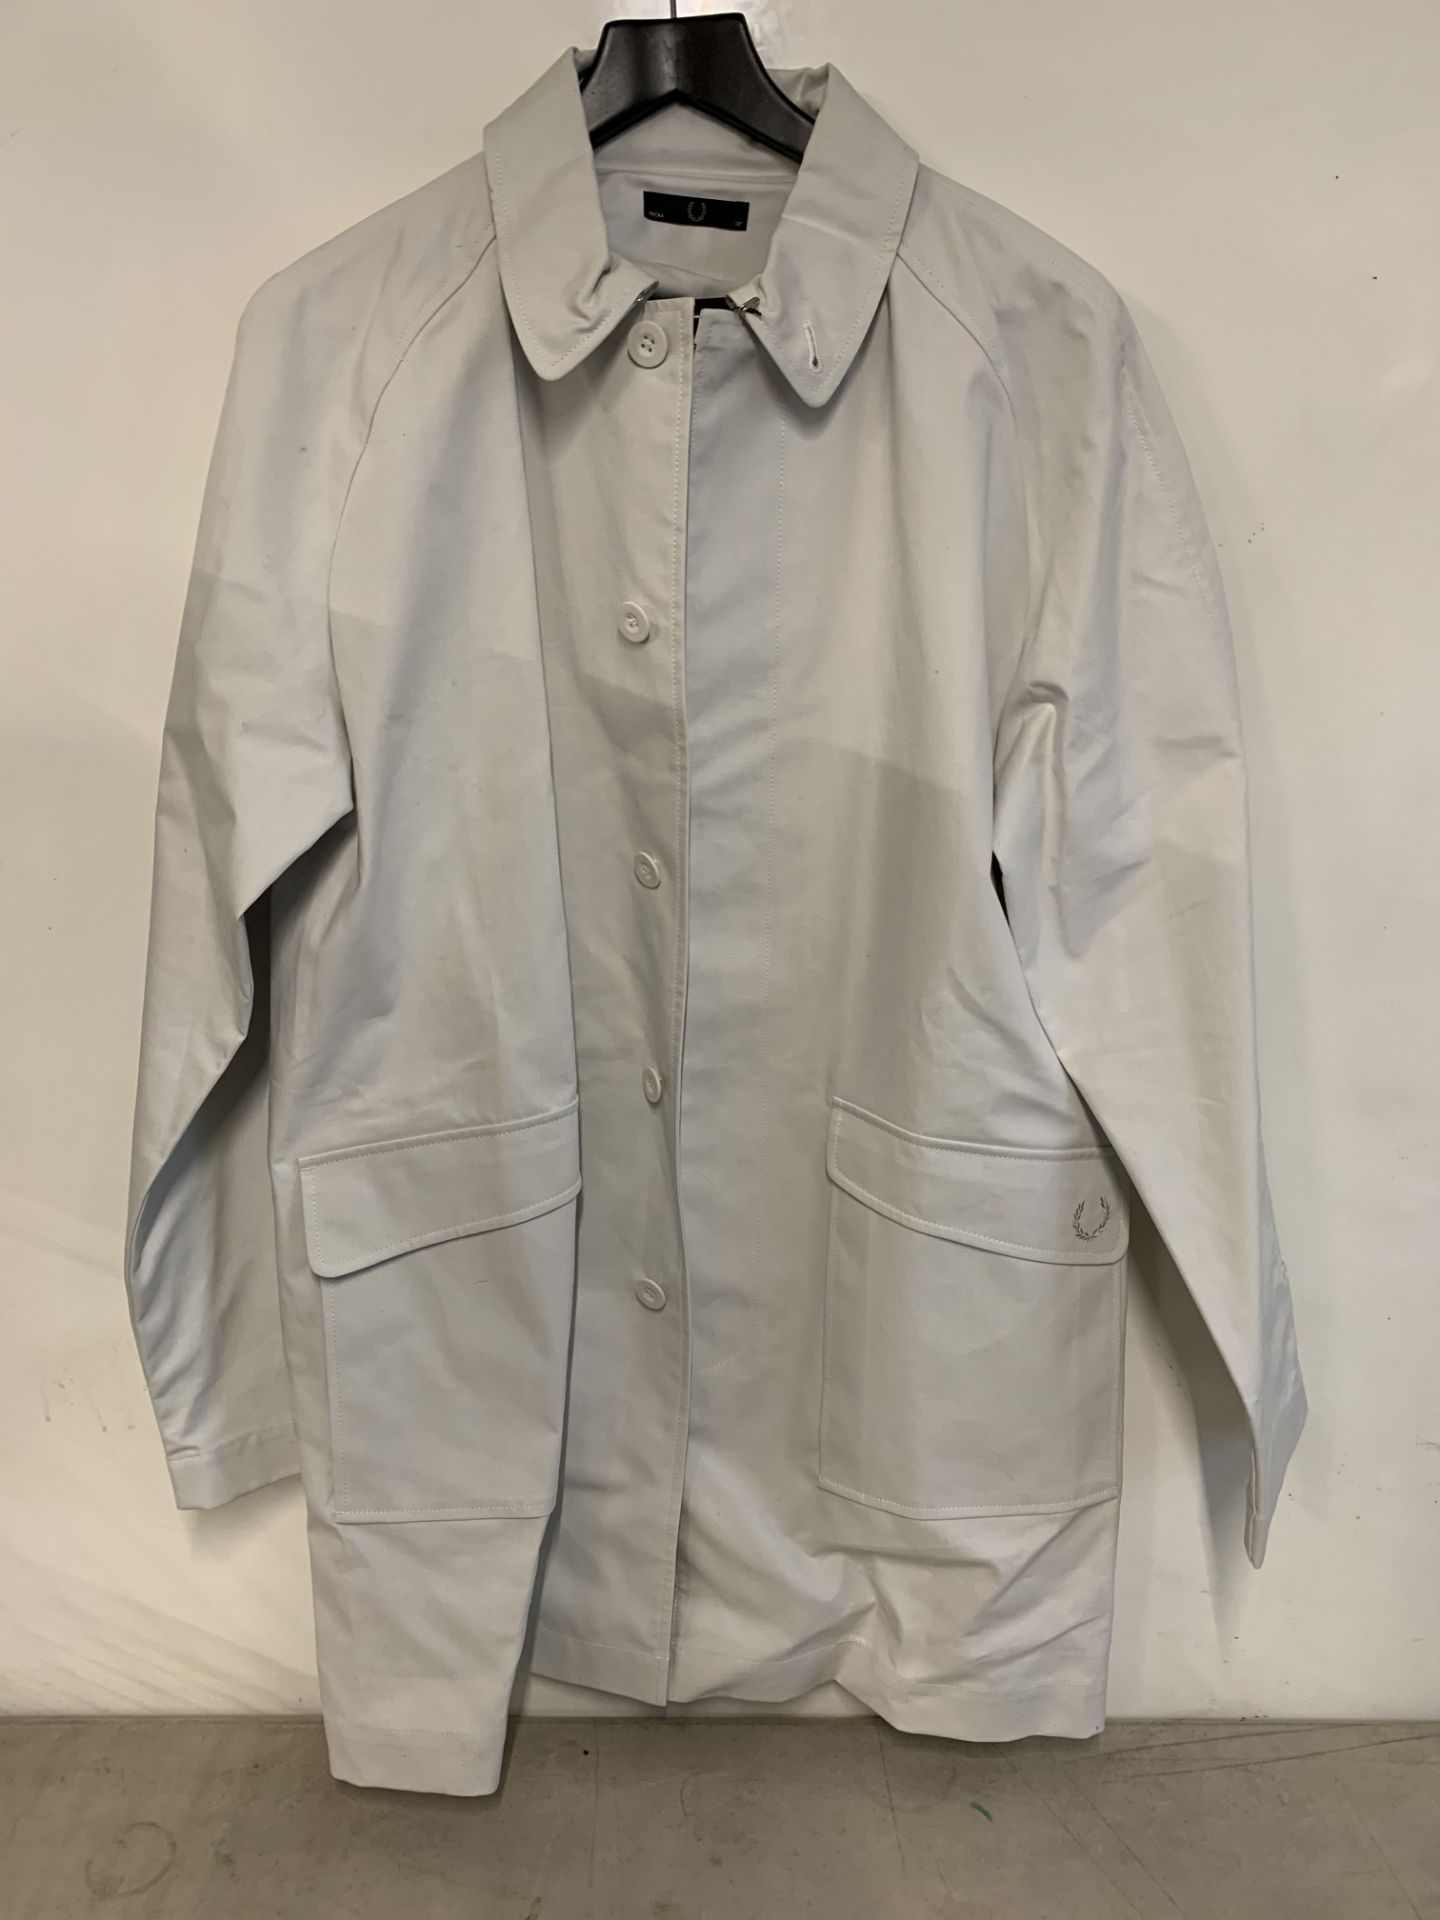 Lot 47 - Fred perry unisex bonded raincoat | RRP £275.00